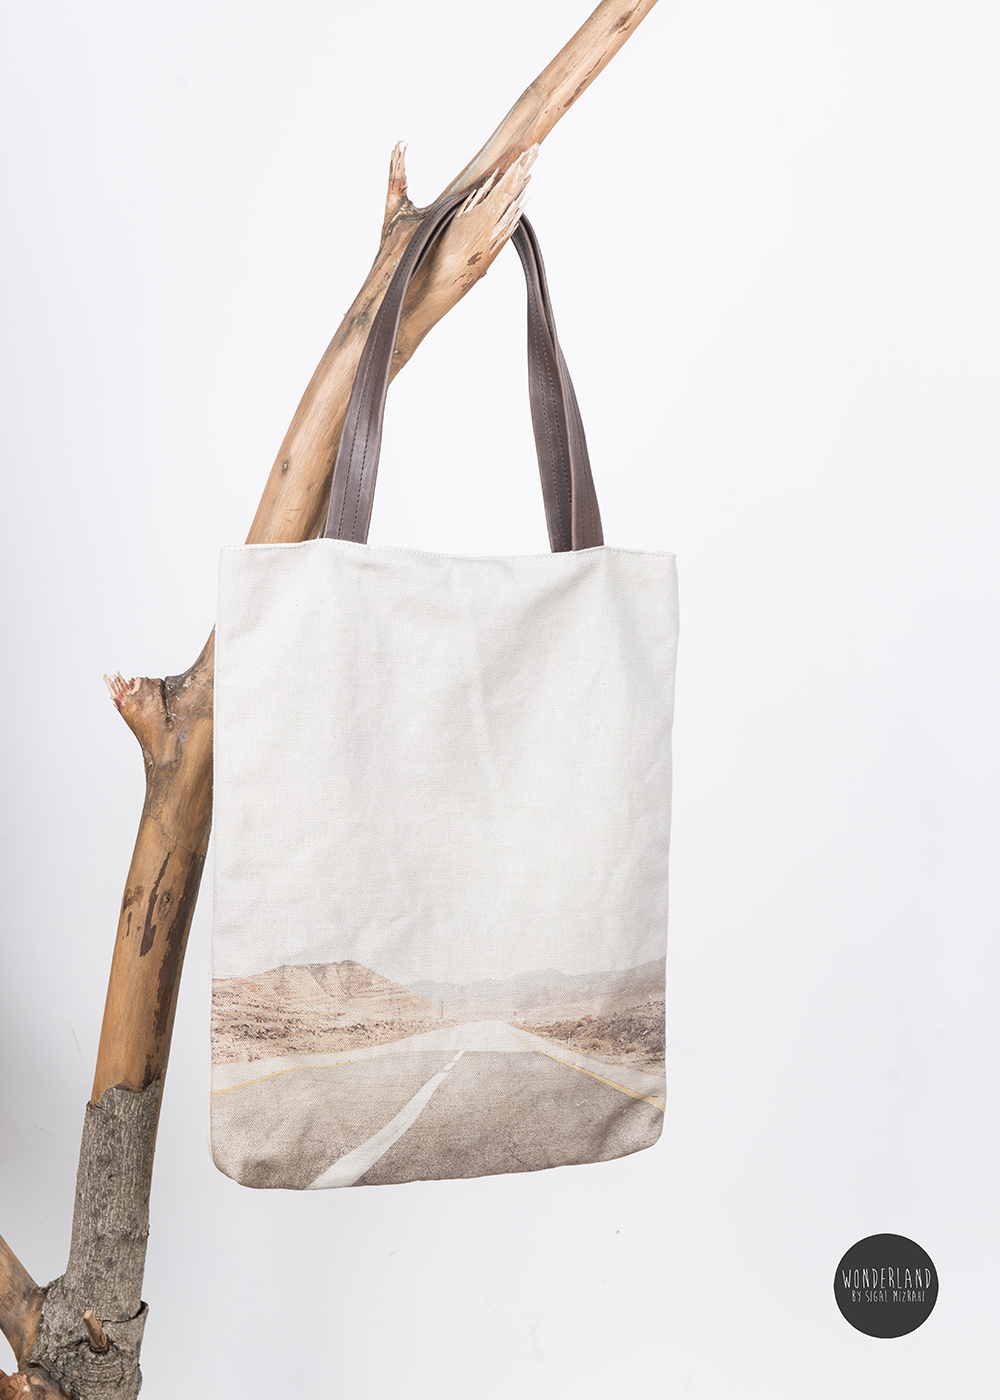 DESERT ROAD printed tote bag